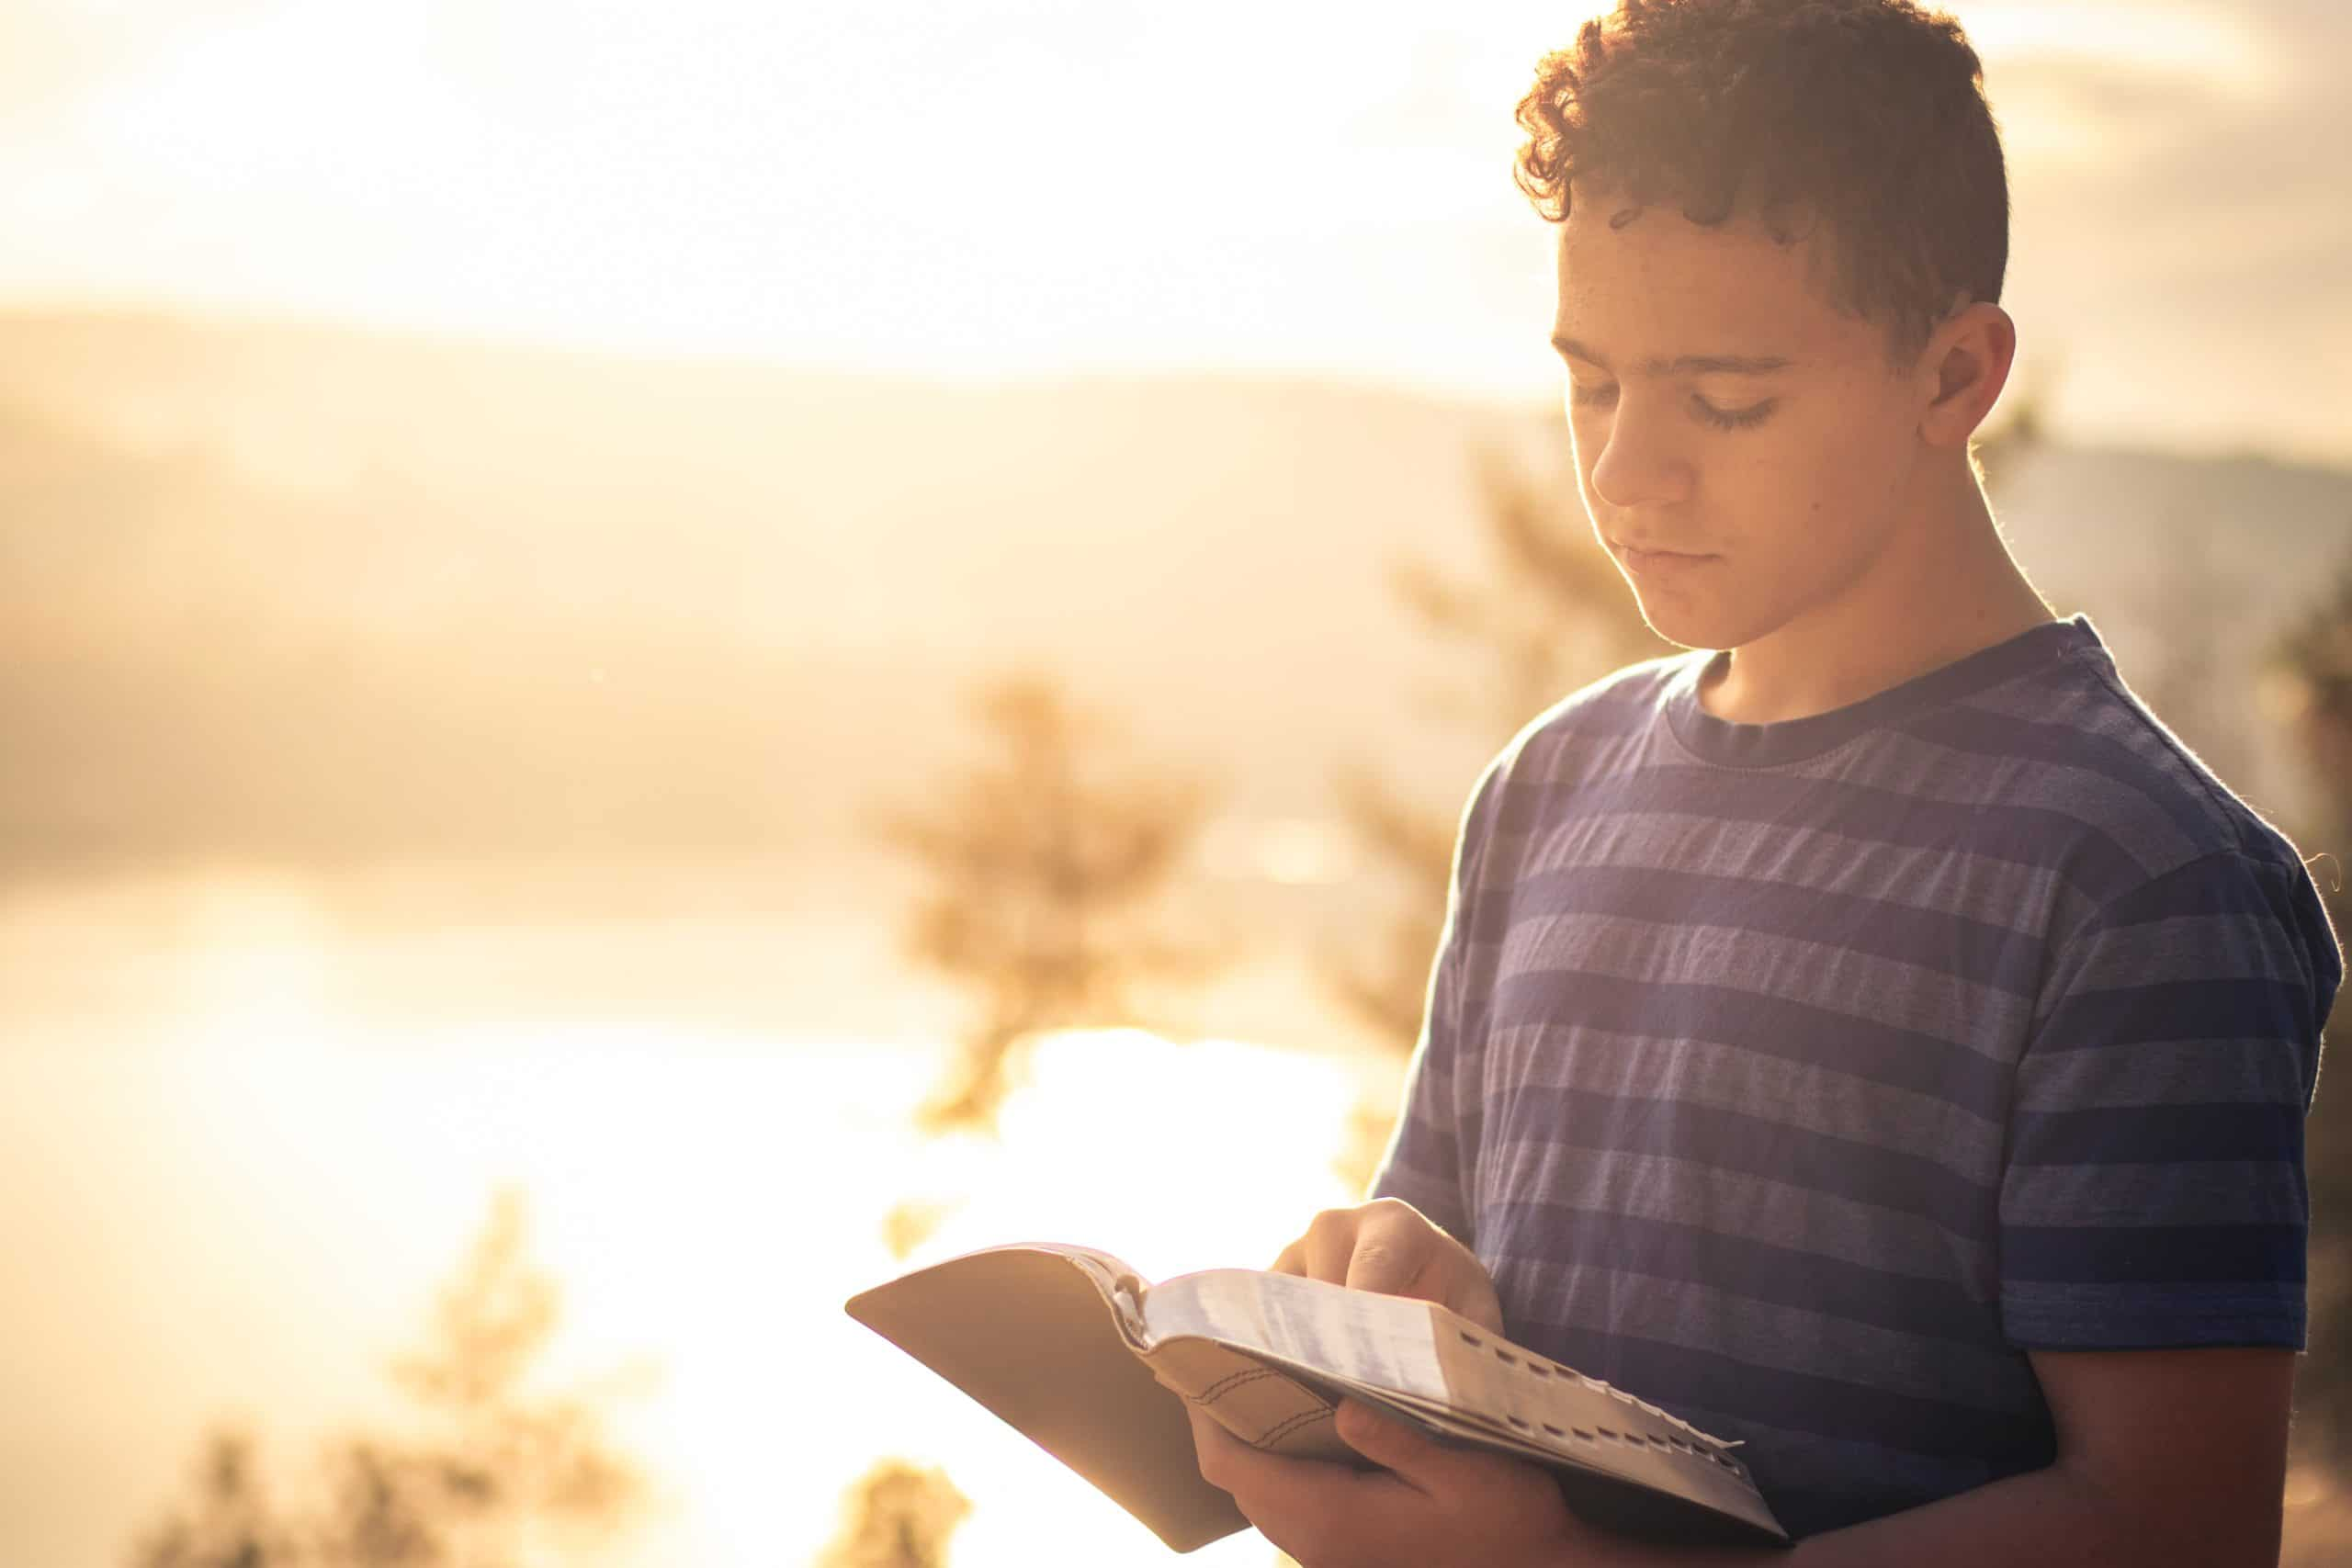 biblical worldview need kids